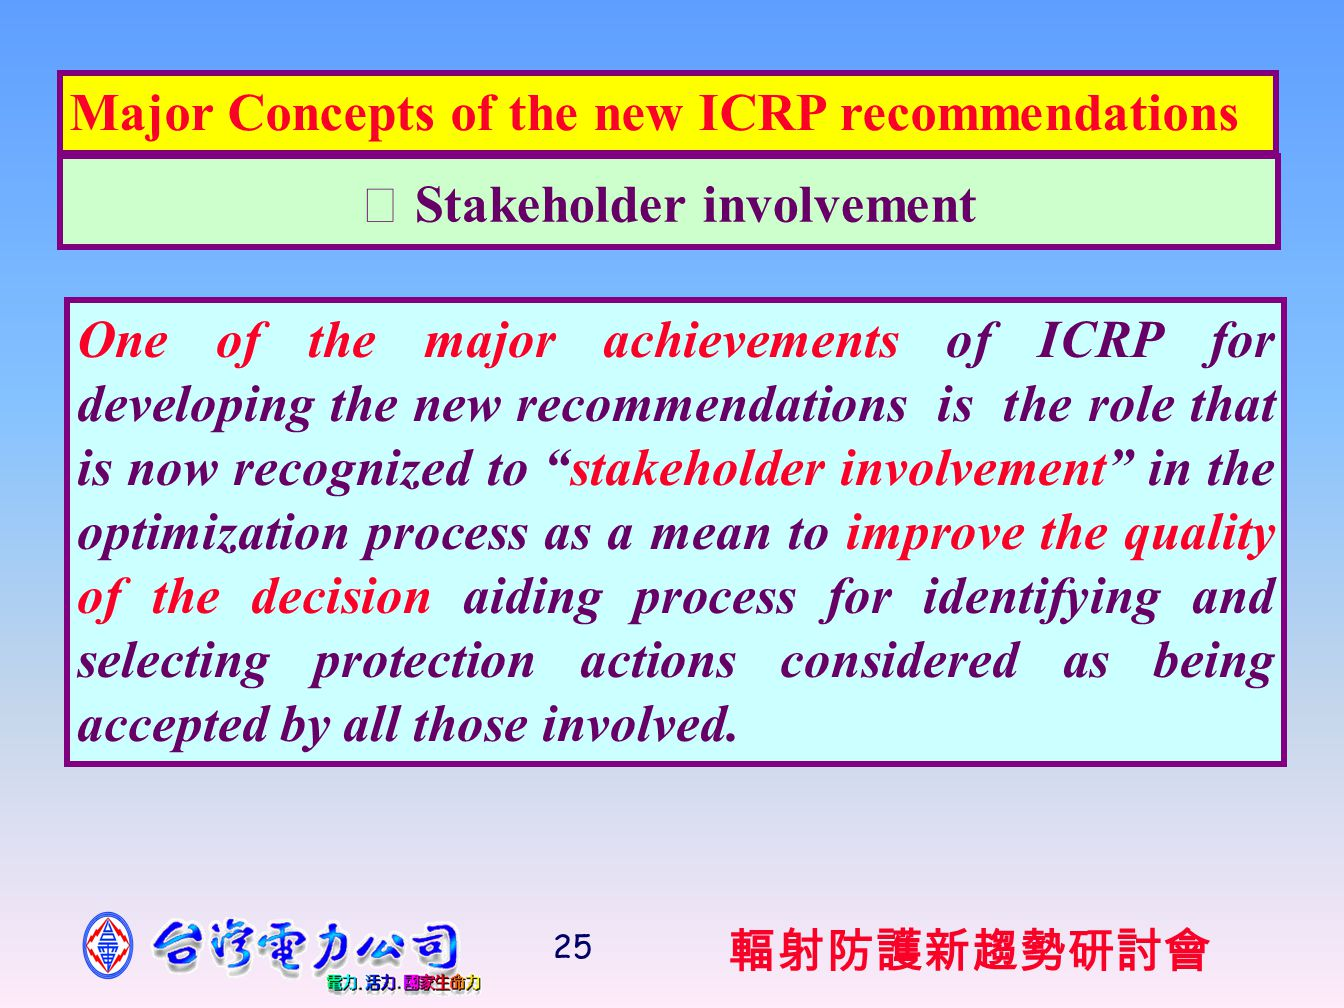 輻射防護新趨勢研討會 25 ‧ Stakeholder involvement Major Concepts of the new ICRP recommendations One of the major achievements of ICRP for developing the new recommendations is the role that is now recognized to stakeholder involvement in the optimization process as a mean to improve the quality of the decision aiding process for identifying and selecting protection actions considered as being accepted by all those involved.